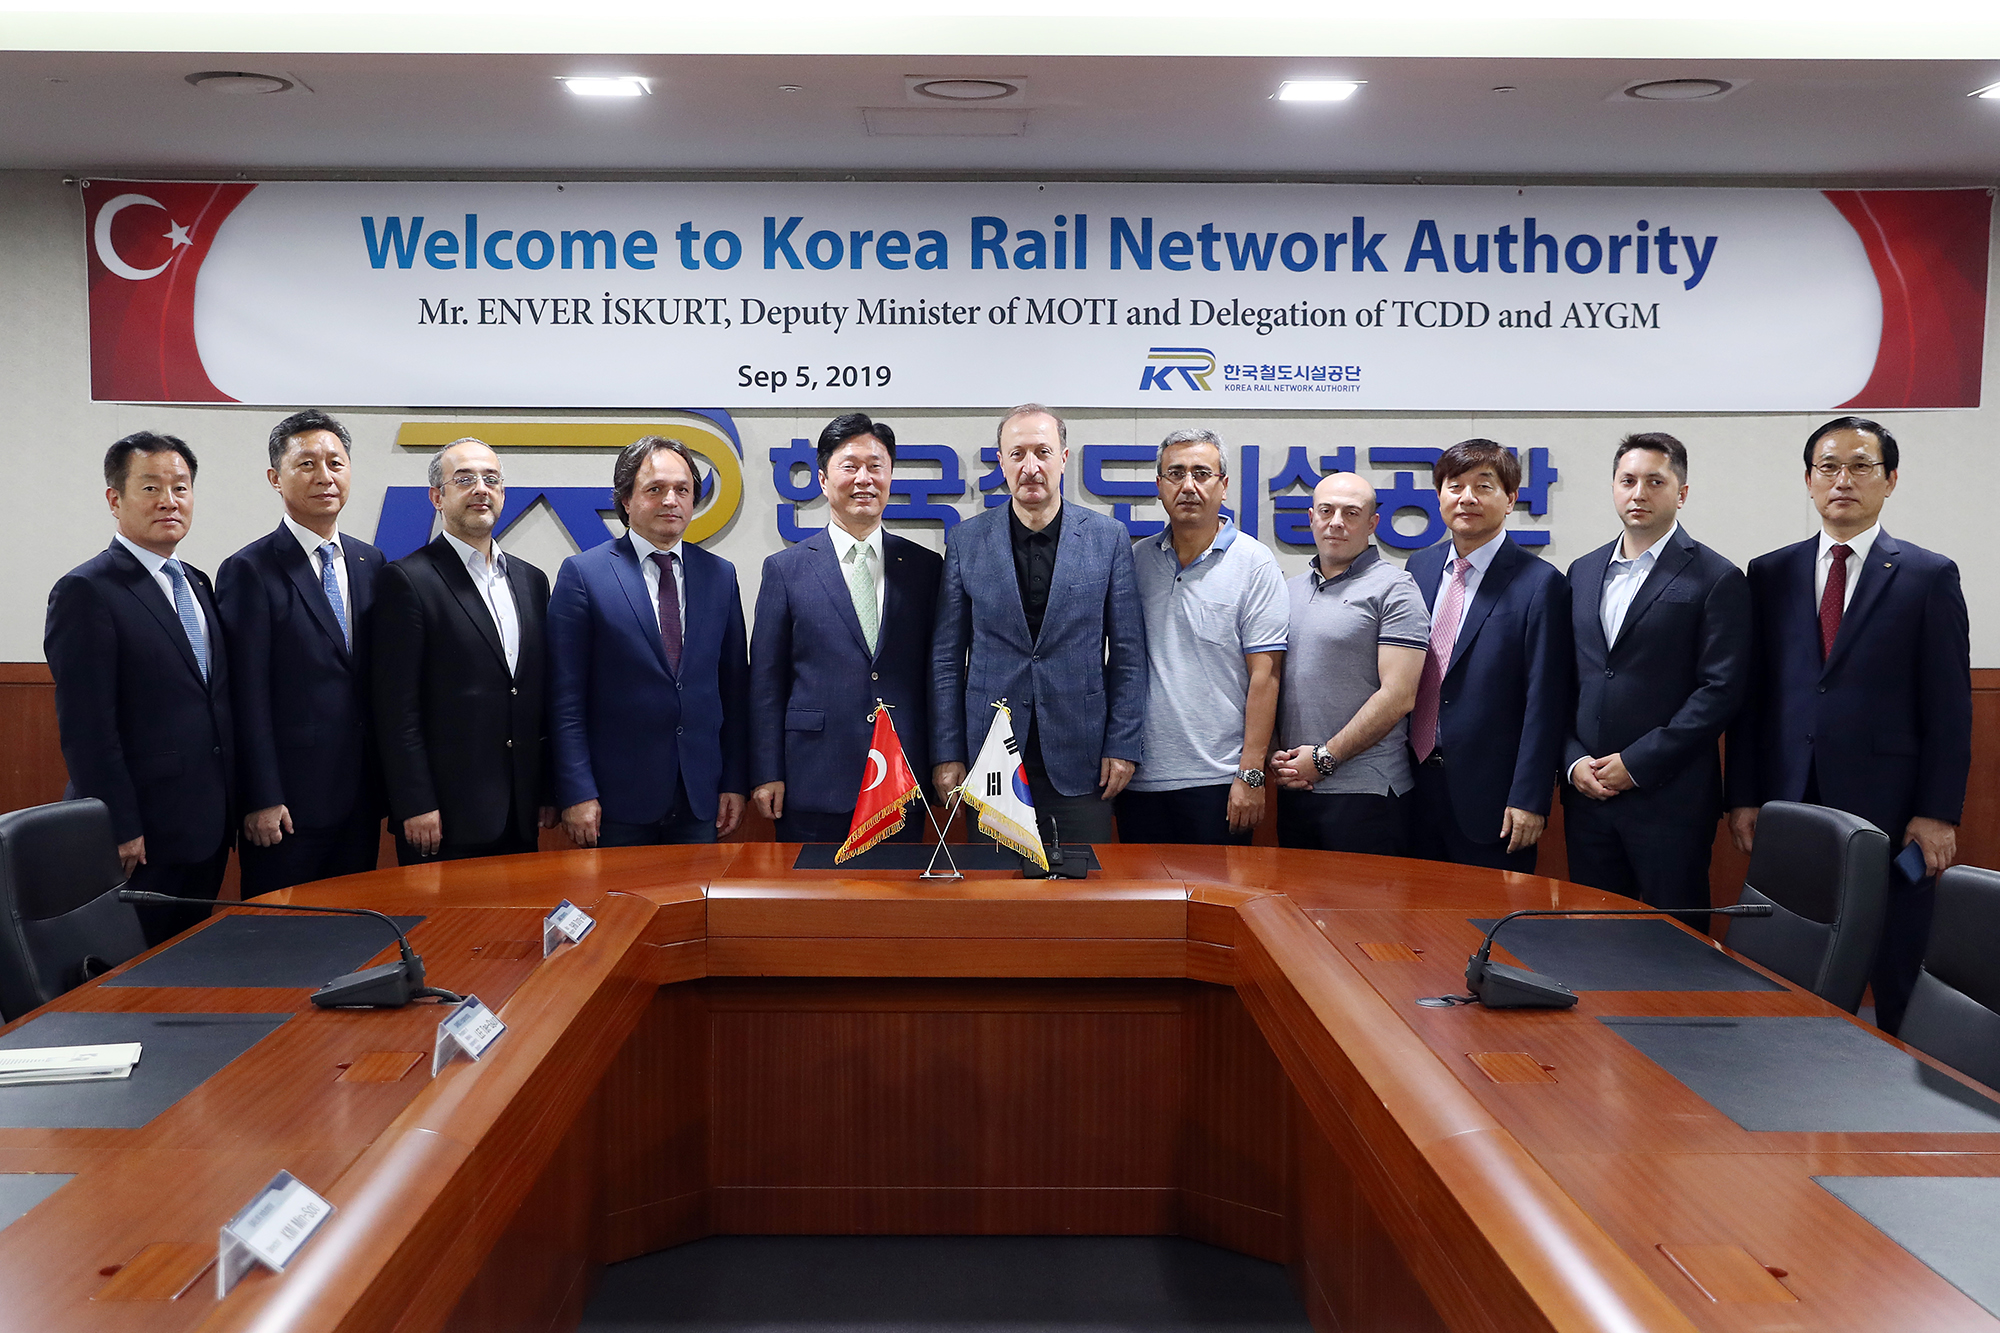 Transport and infrastructure deputy minister of Turkey visits KRNA to discuss cooperation in Turkey's high speed rail project 사진